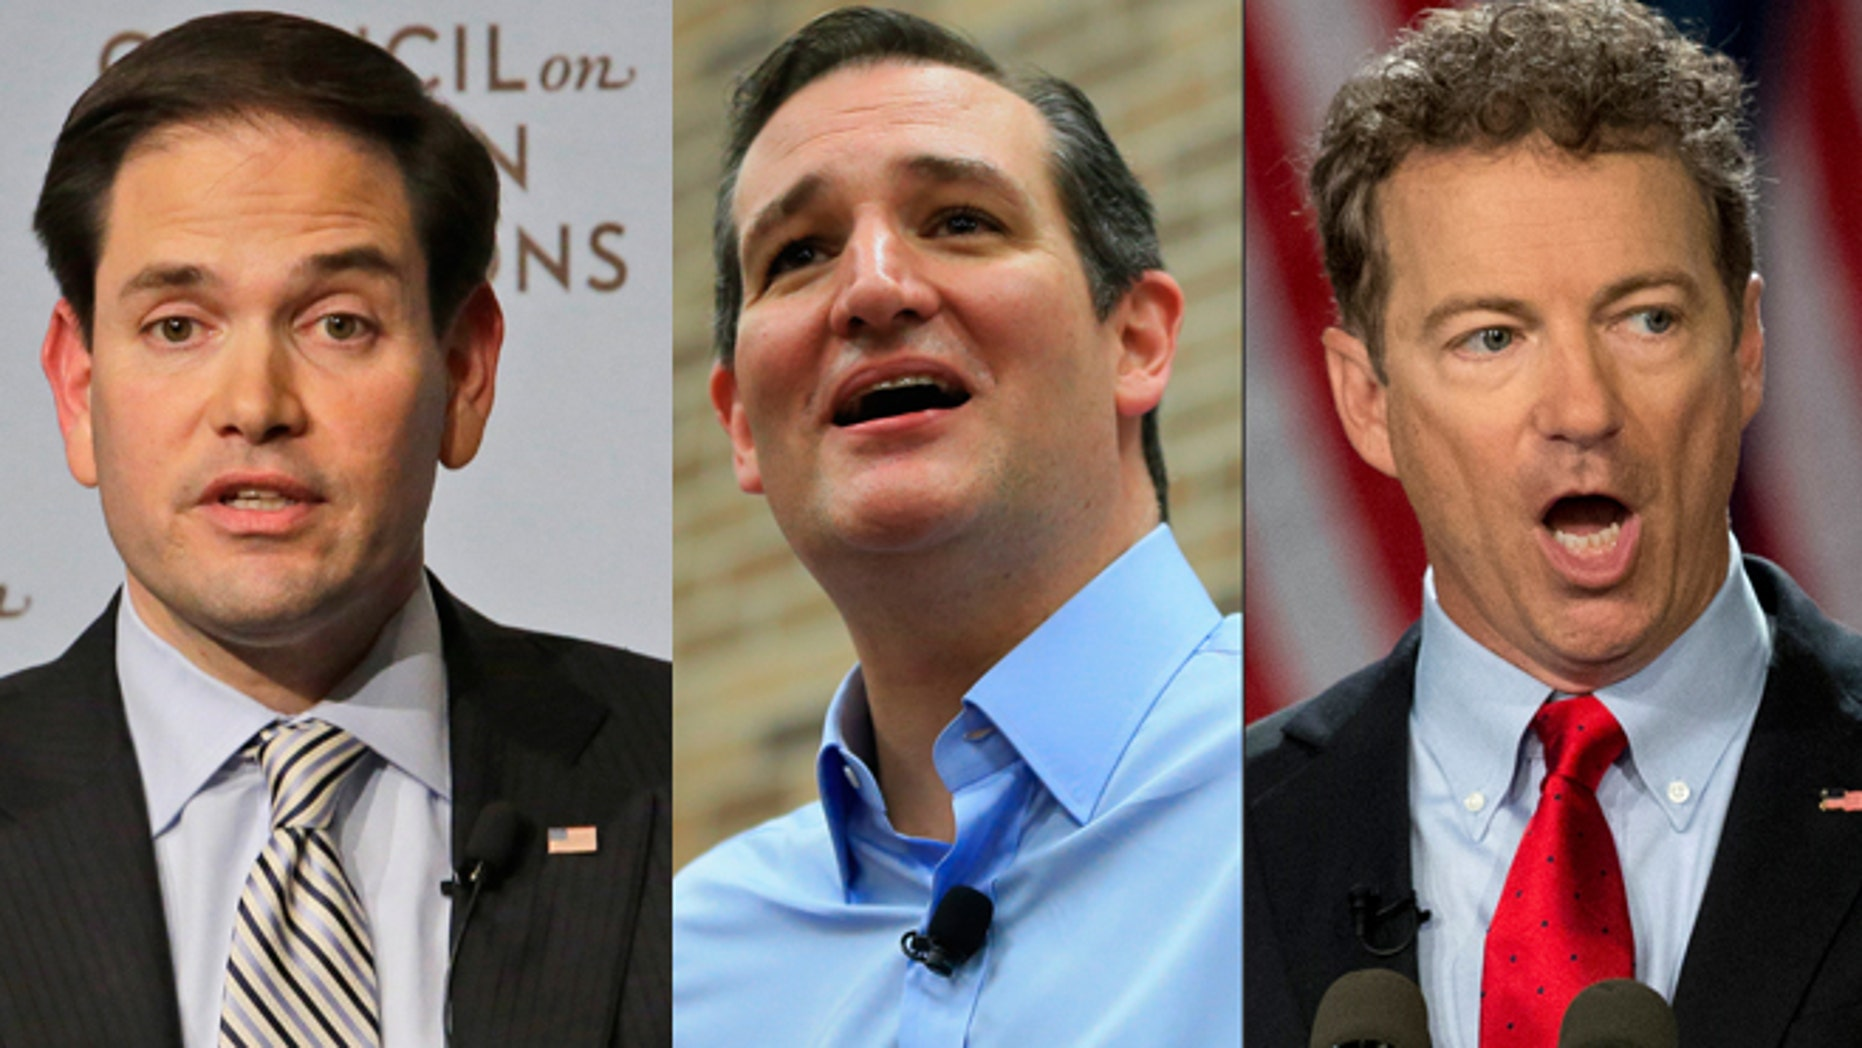 This photo combination shows, from left, Republic presidential candidates Sen. Marco Rubio, Sen. Ted Cruz, of Texas, and Sen. Rand Paul, of Kentucky. (AP Photo/Mary Altaffer/Nati Harnik/Carloyn Kaster)